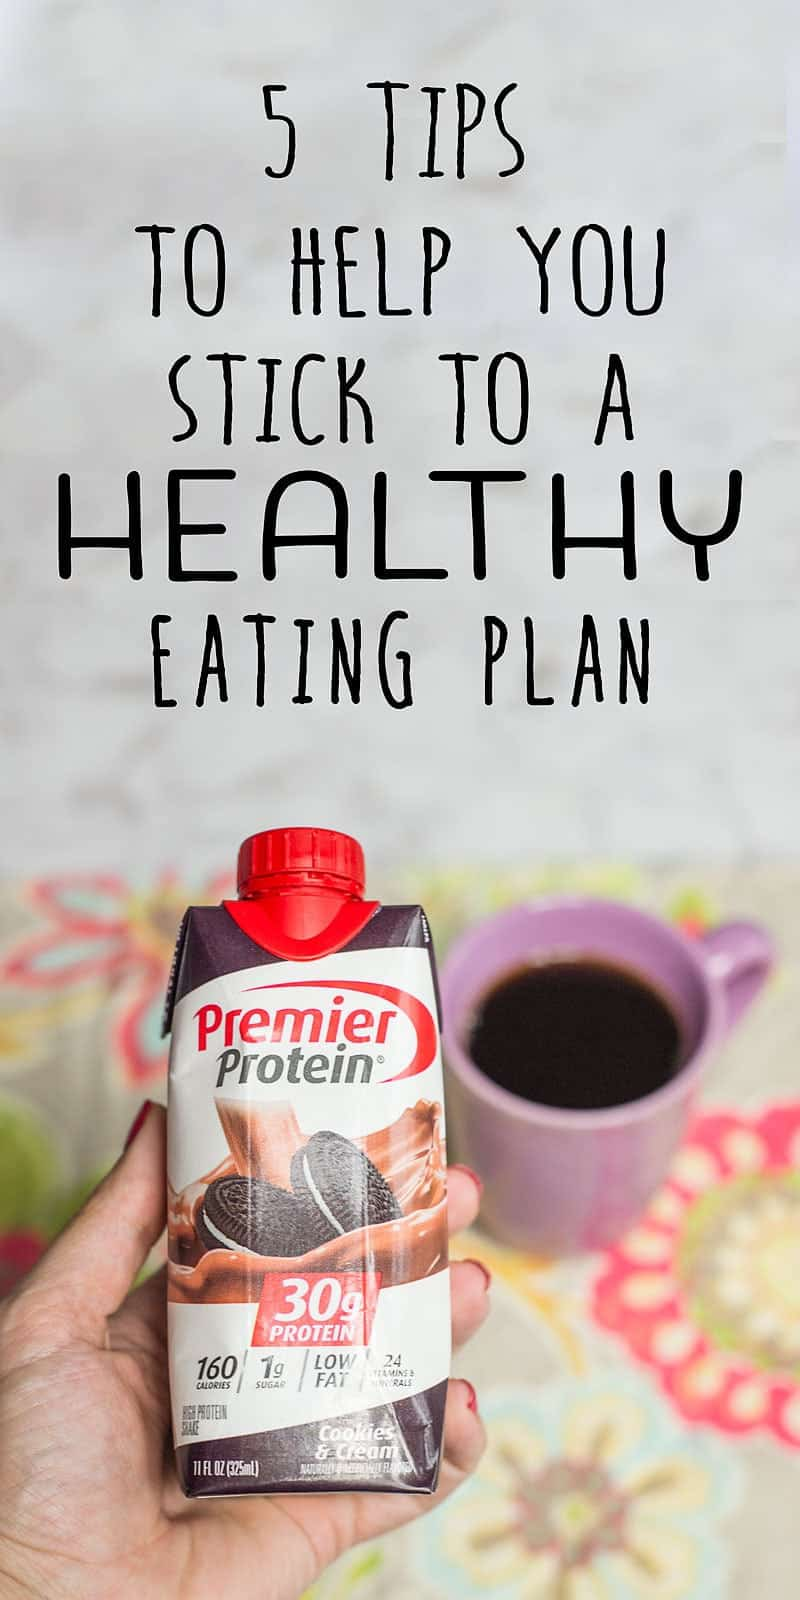 How to stick to a healthy eating plan